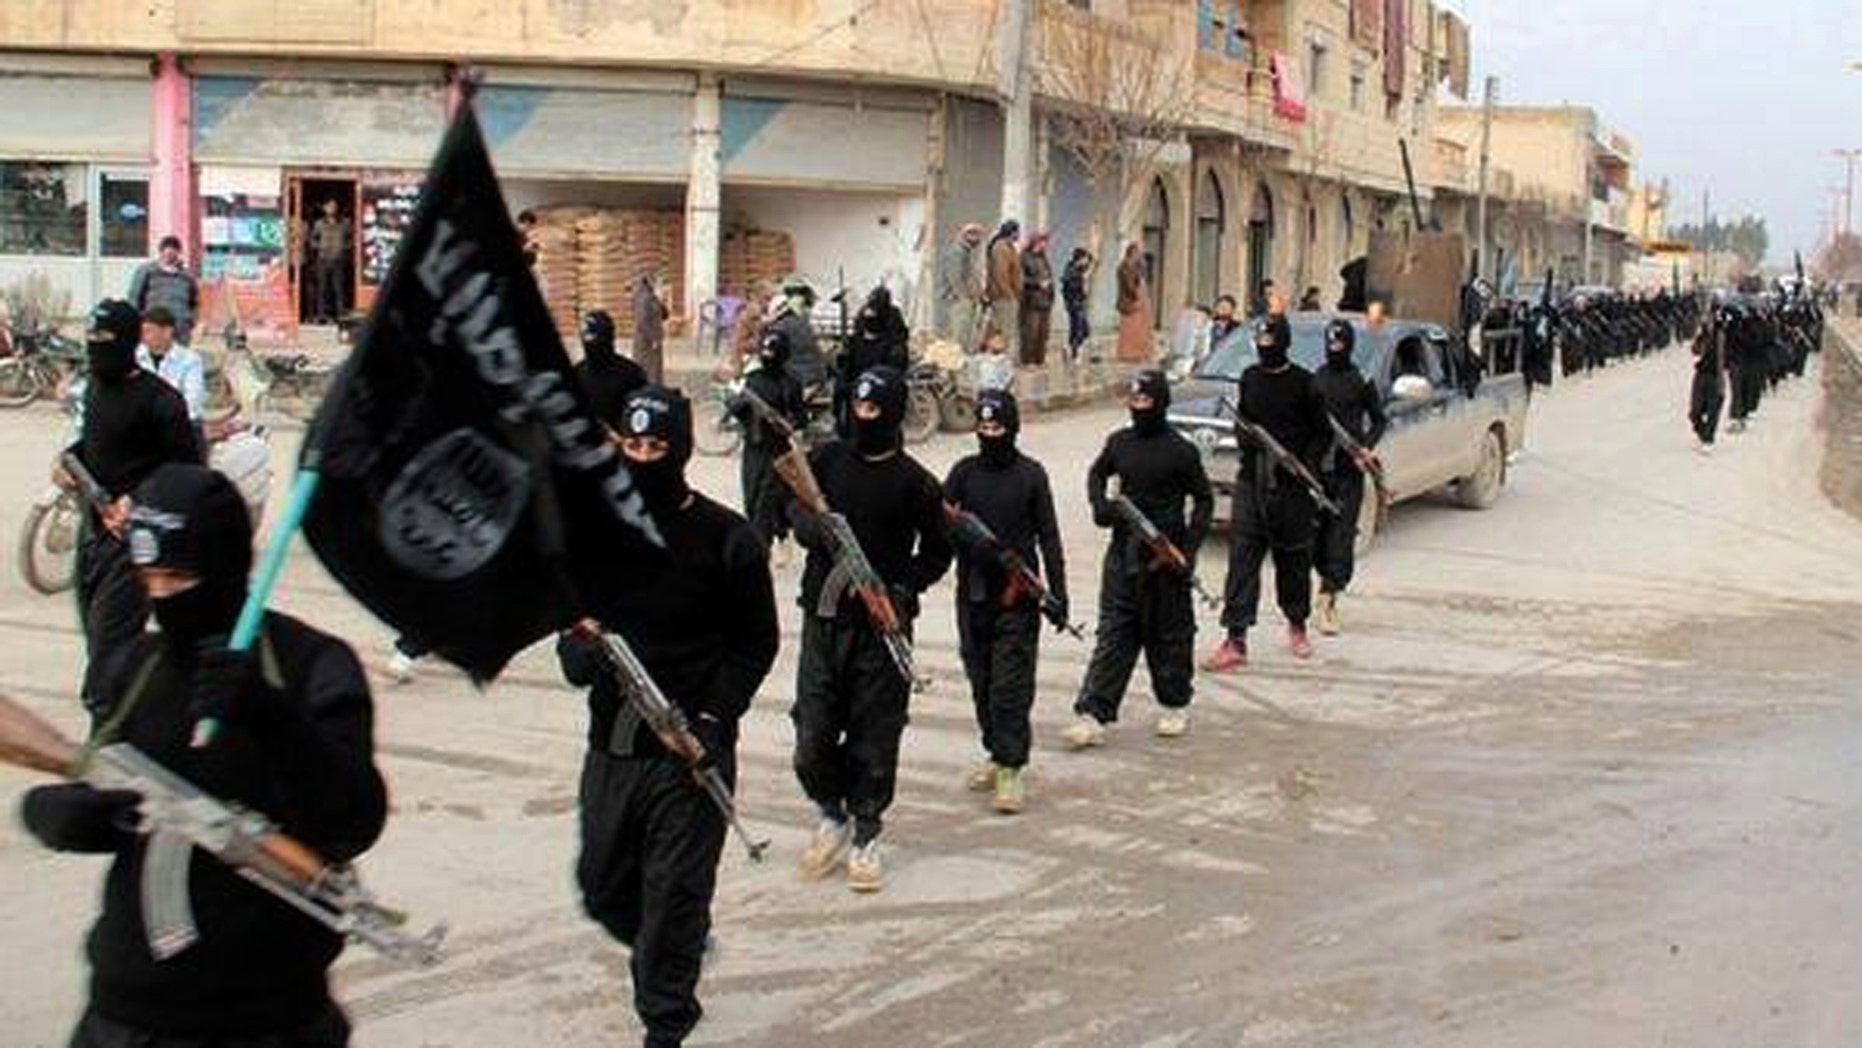 Islamic State group fighters marching. A California man has pleaded guilty to aiding the terrorist organization.